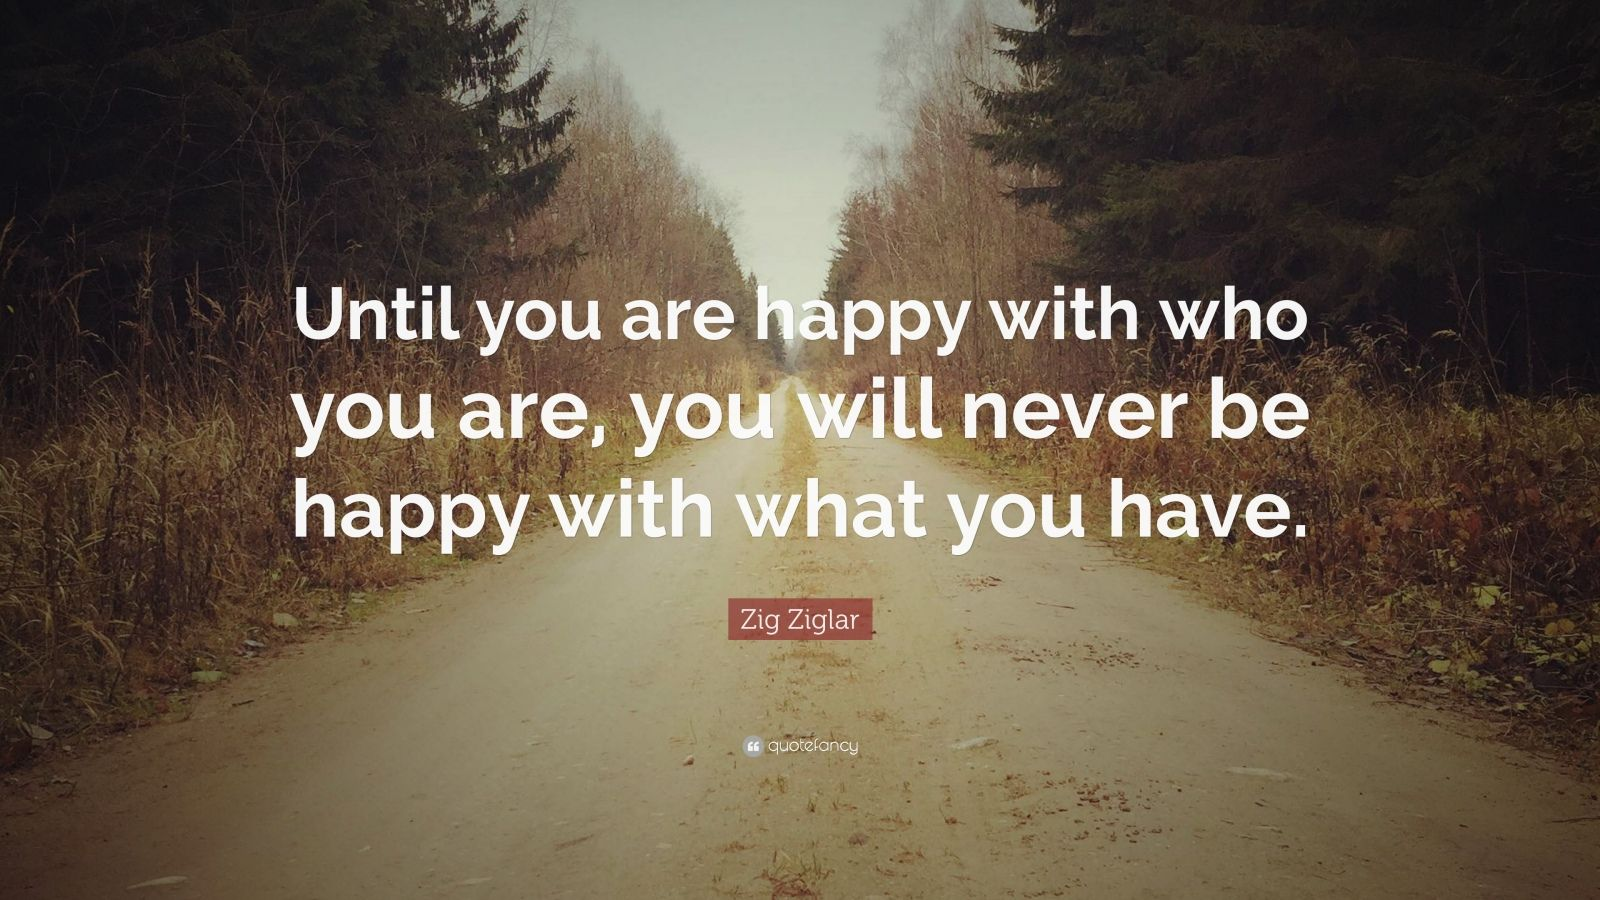 "Happiness Quotes: ""Until you are happy with who you are, you will never be happy with what you have."" — Zig Ziglar"